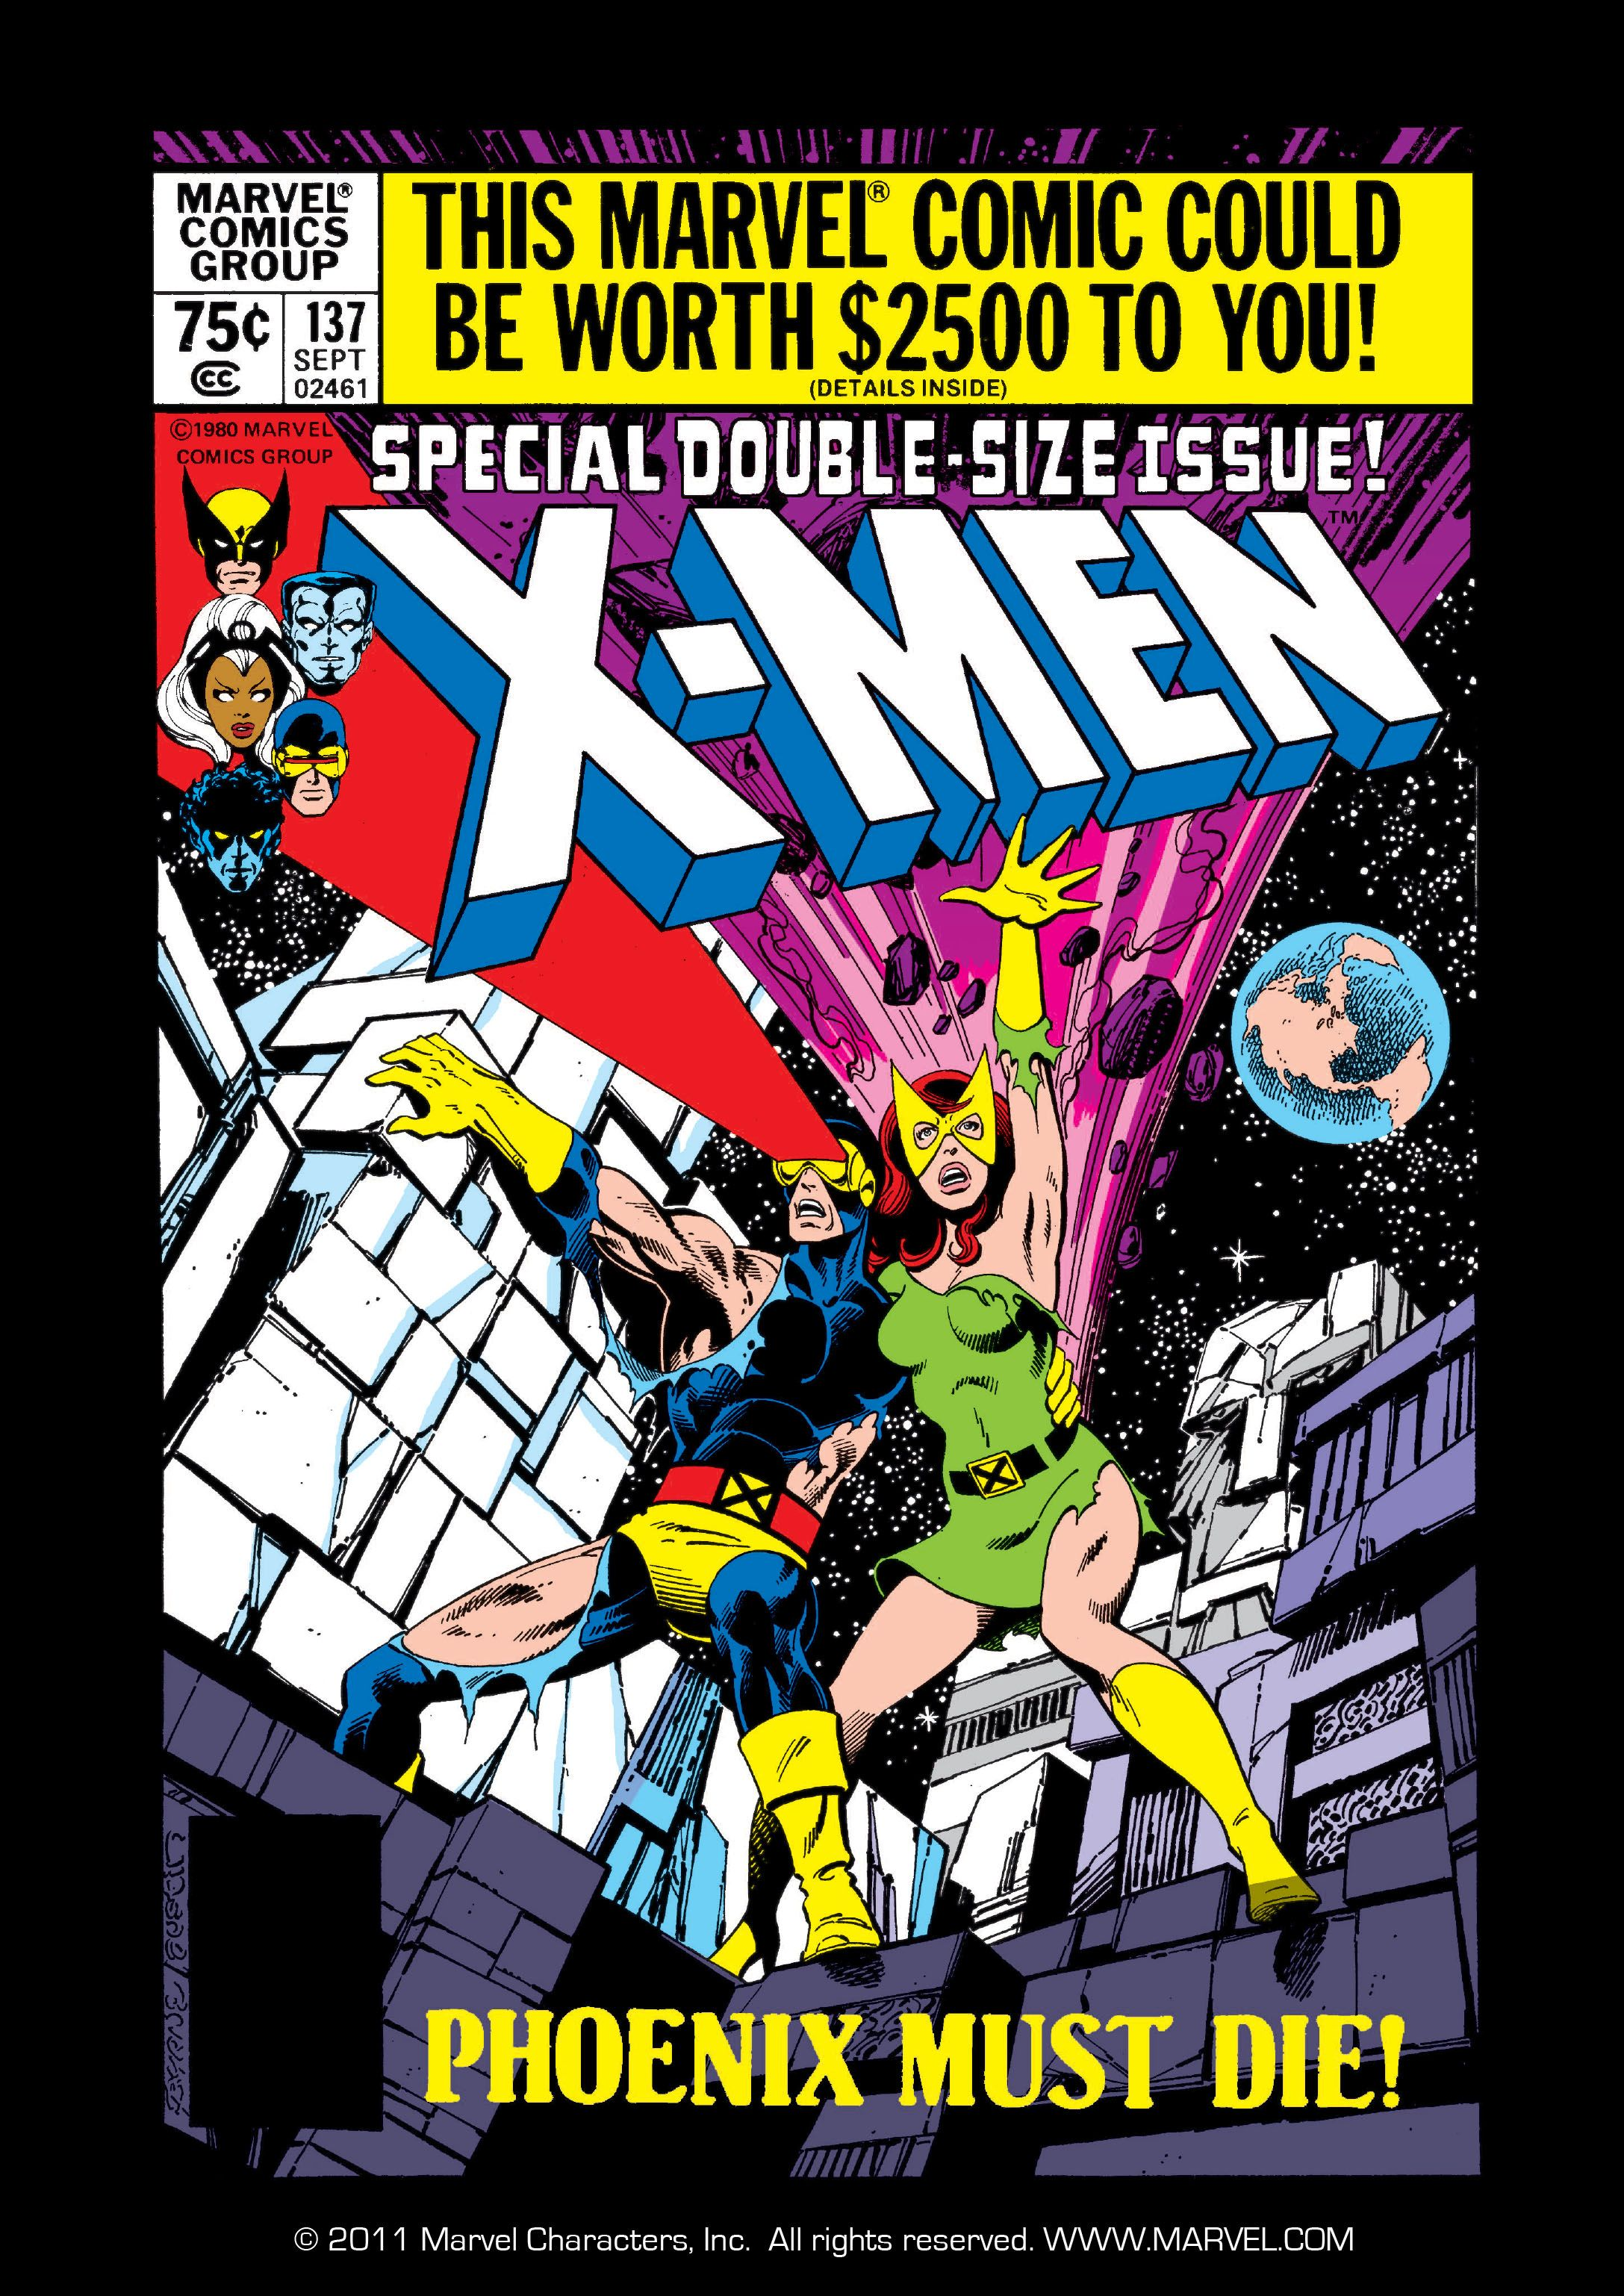 Uncanny X Men 1963 Issue 137 Read Uncanny X Men 1963 Issue 137 Comic Online In High Quality Marvel Comic Books Xmen Comics Comic Book Covers